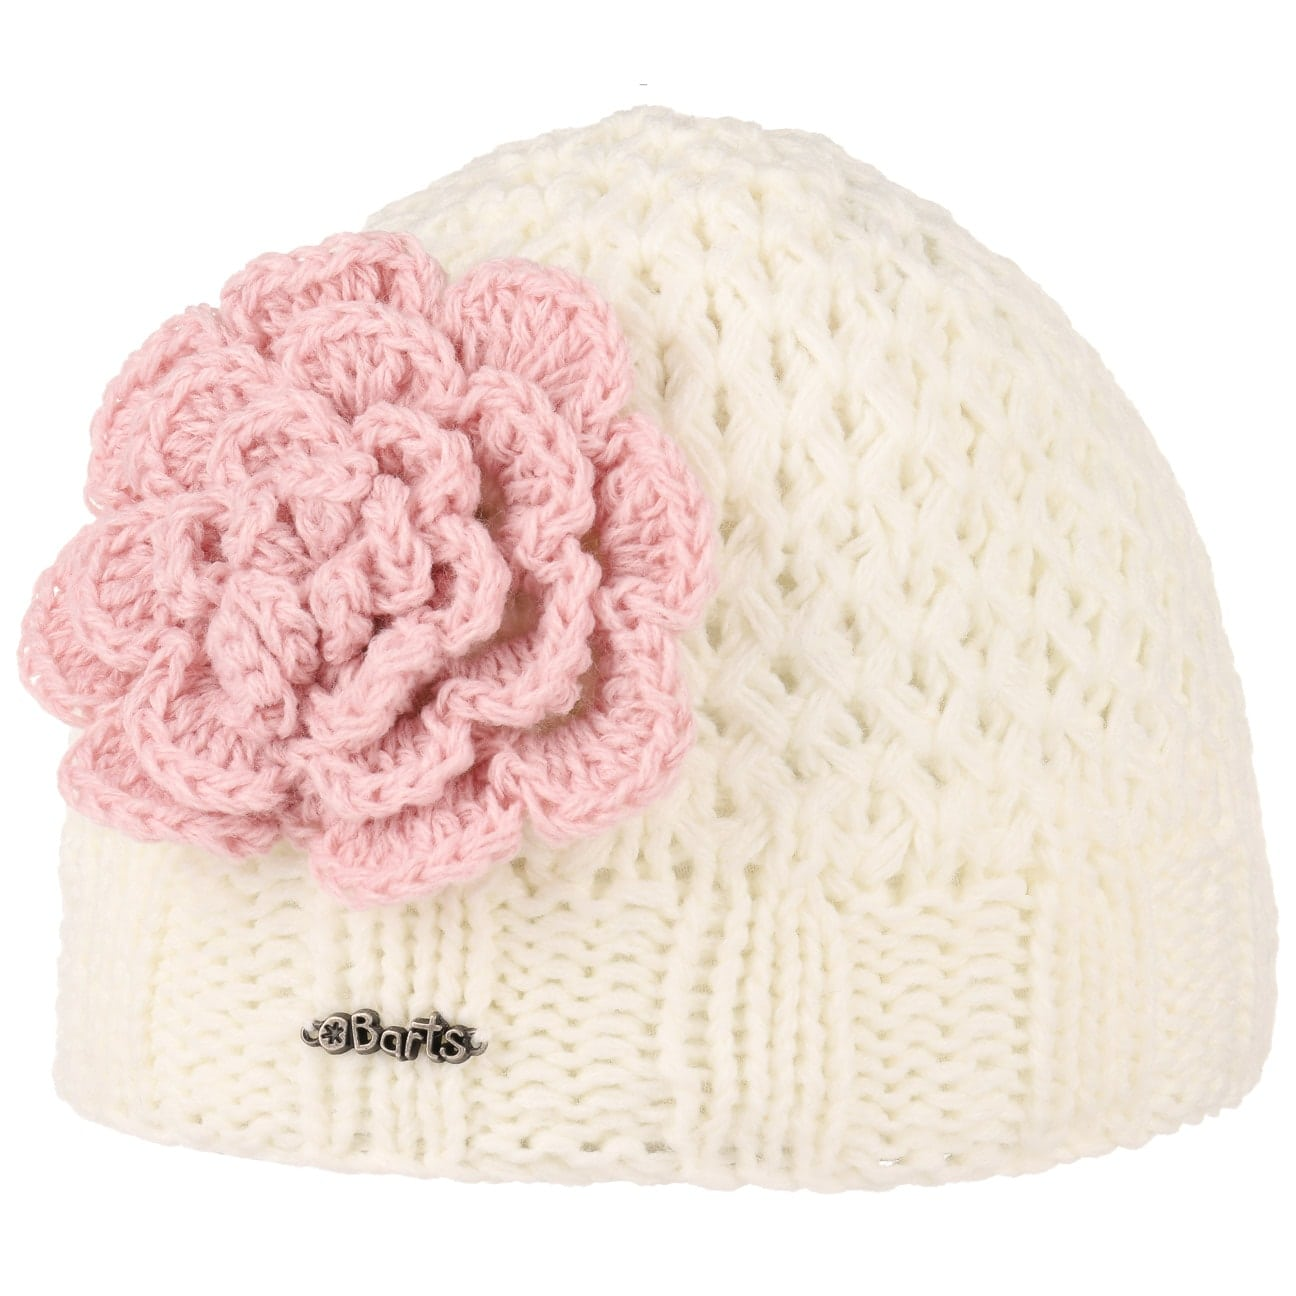 rose-strickbeanie-by-barts-pull-on